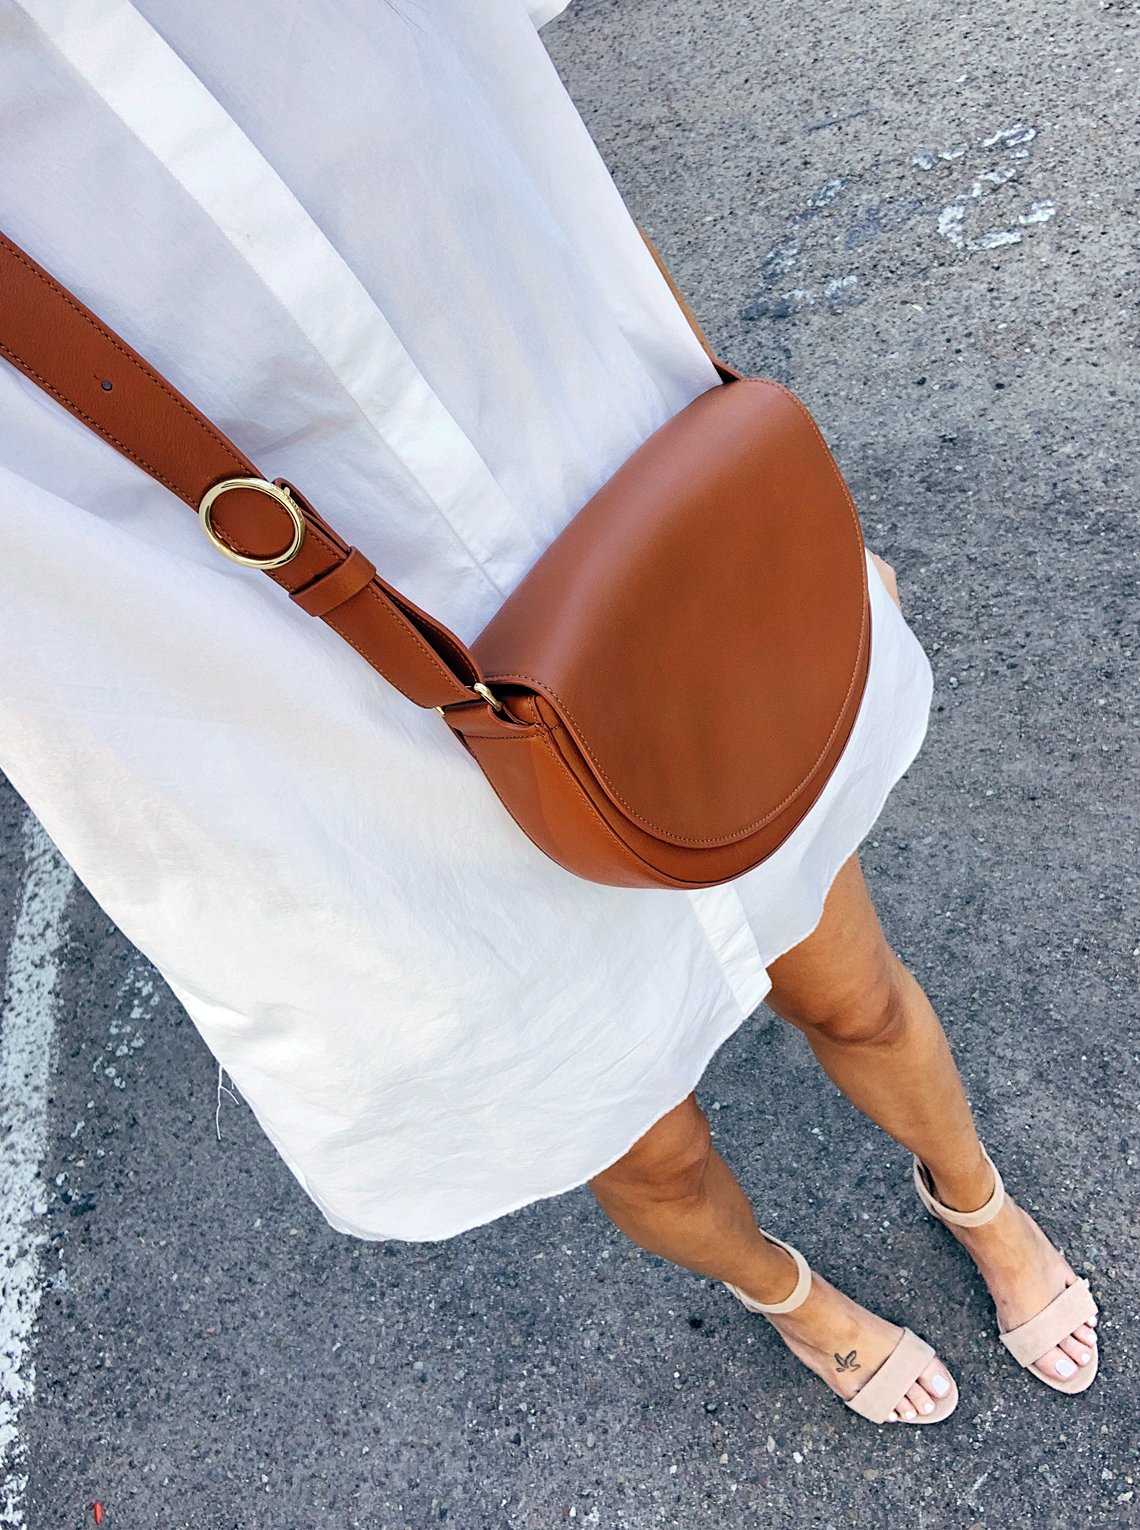 Fashion Jackson Wearing White Shirtdress Tan Handbag